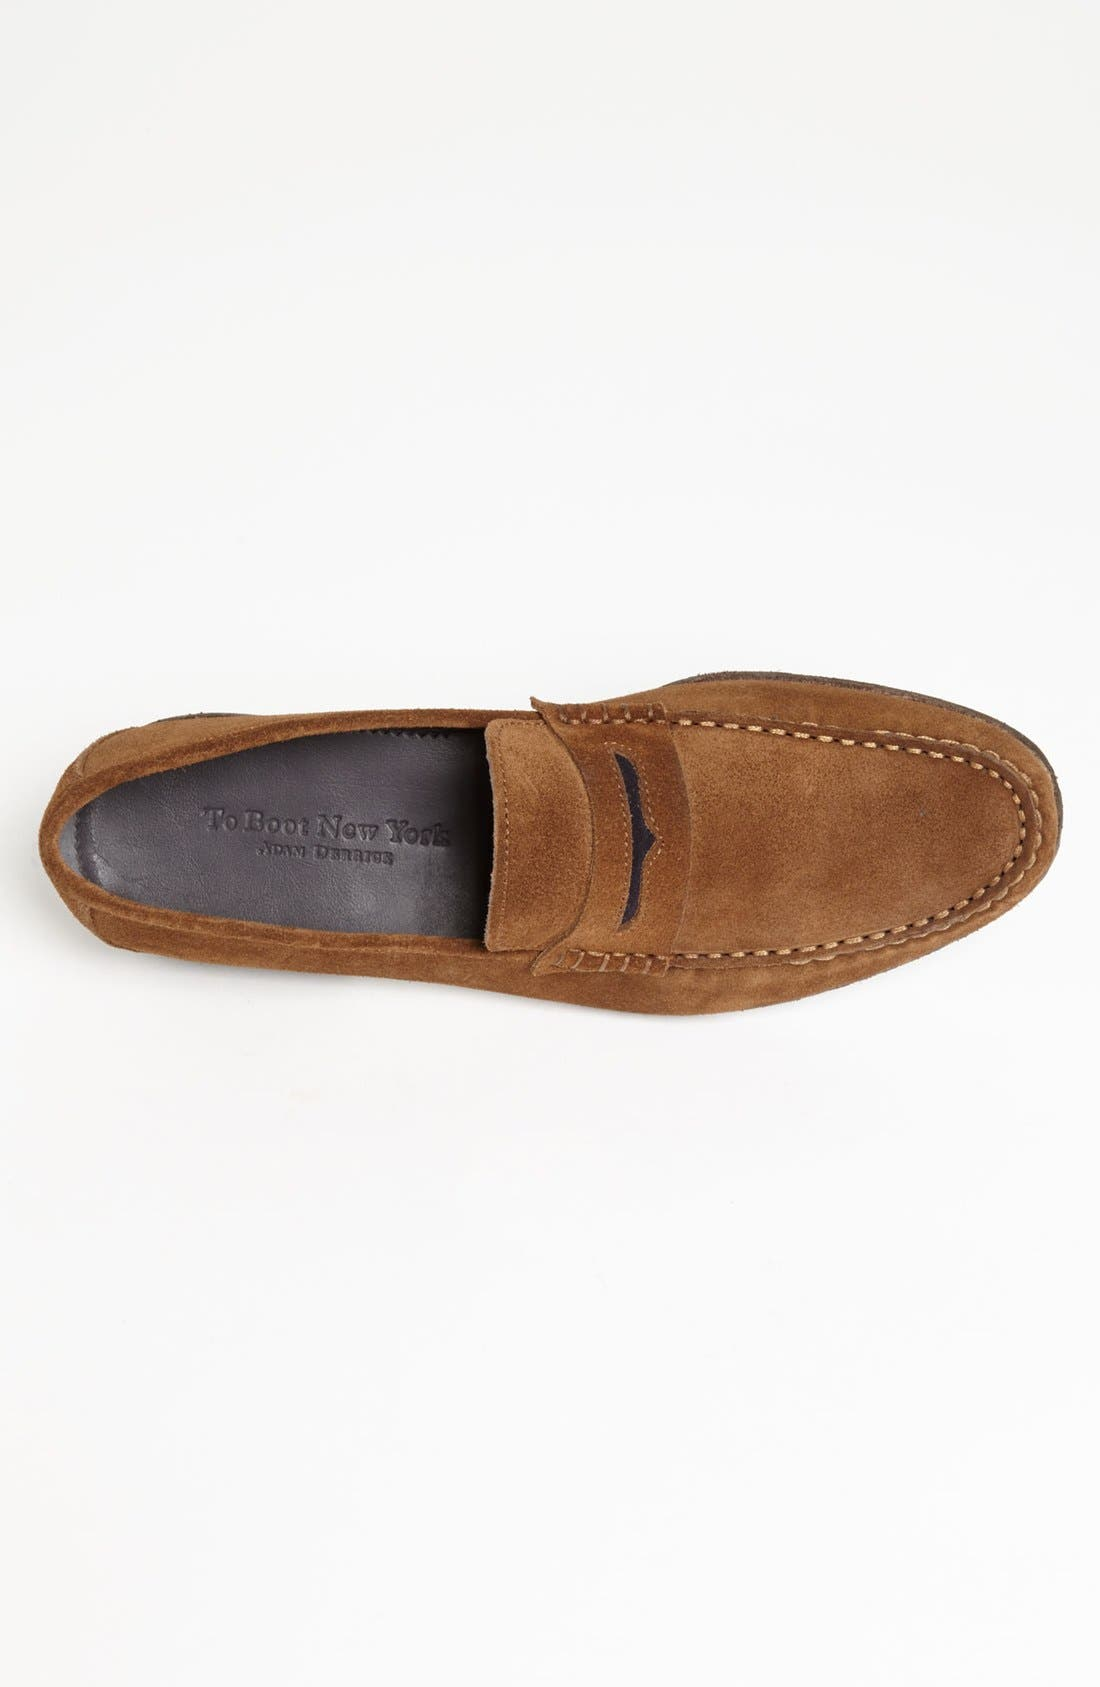 Alternate Image 3  - To Boot New York 'Wilson' Suede Penny Loafer